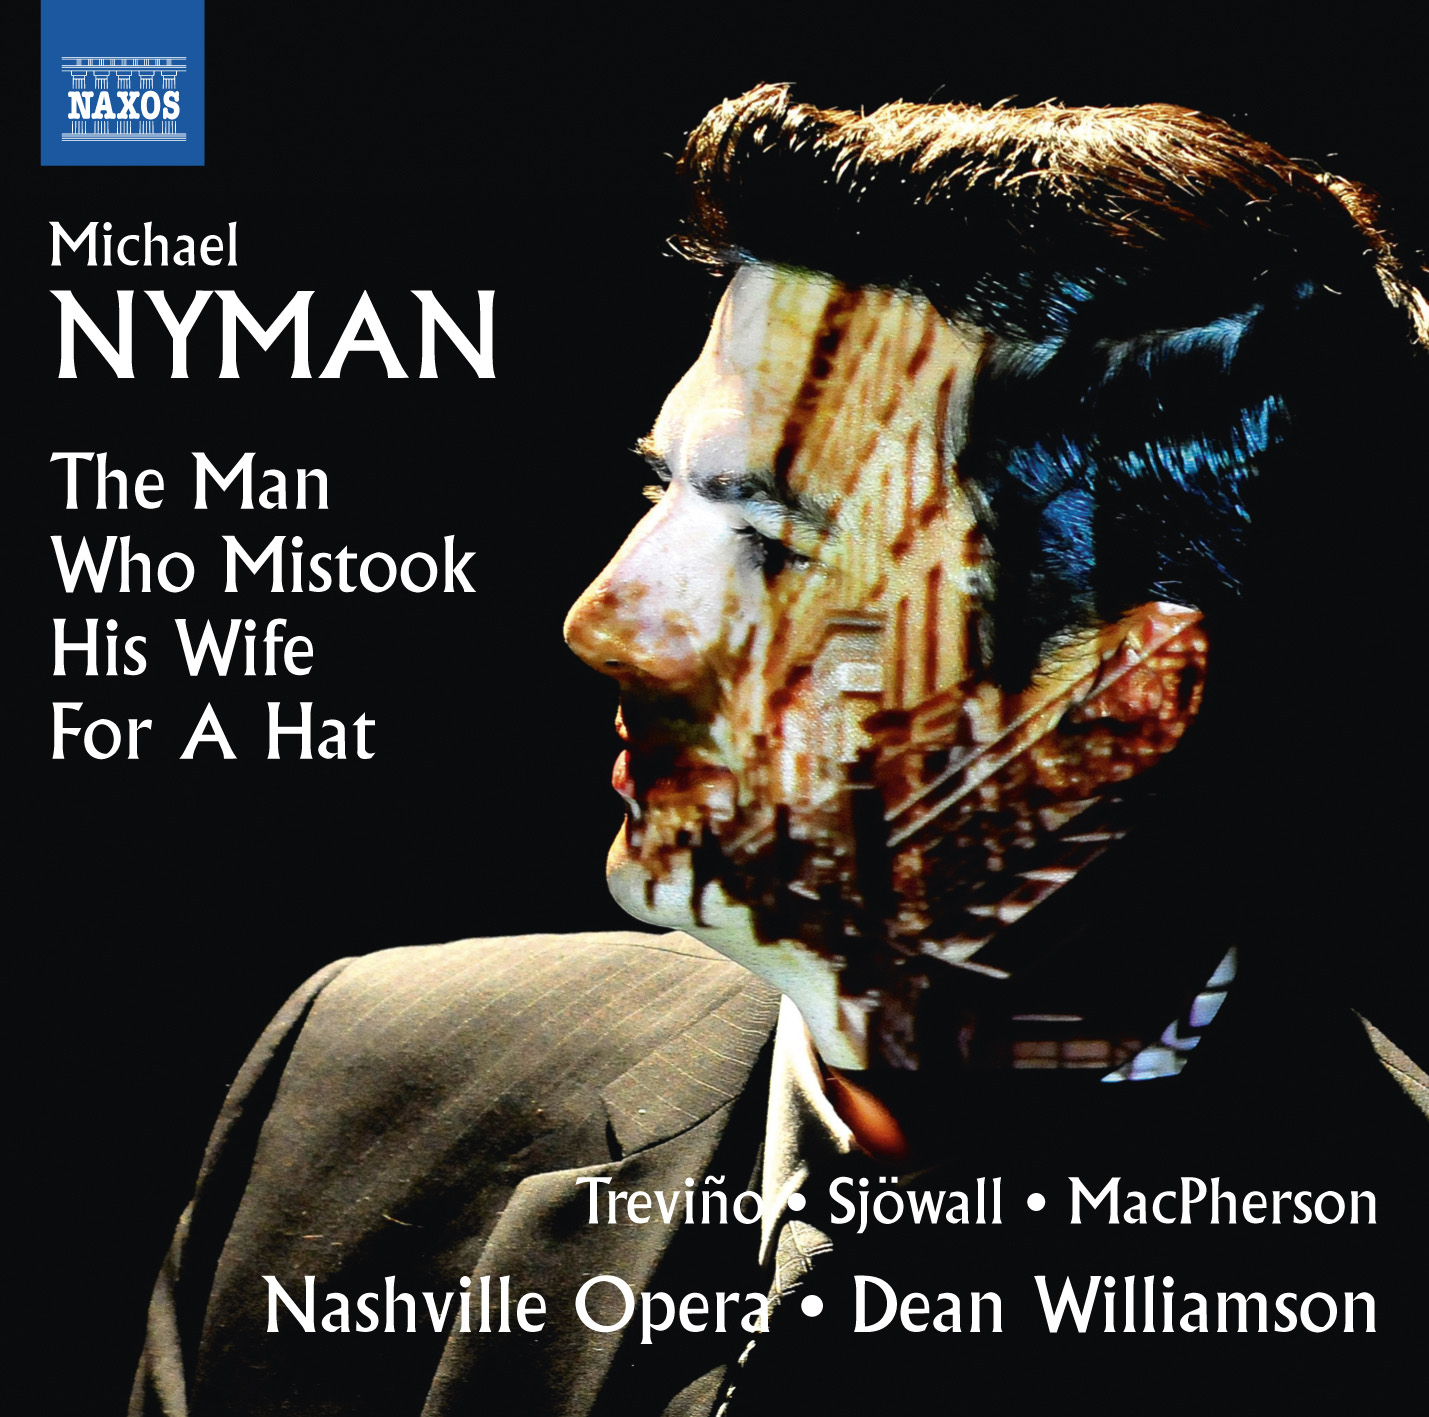 IN REVIEW: Michael Nyman - THE MAN WHO MISTOOK HIS WIFE FOR A HAT (NAXOS 8.660398)